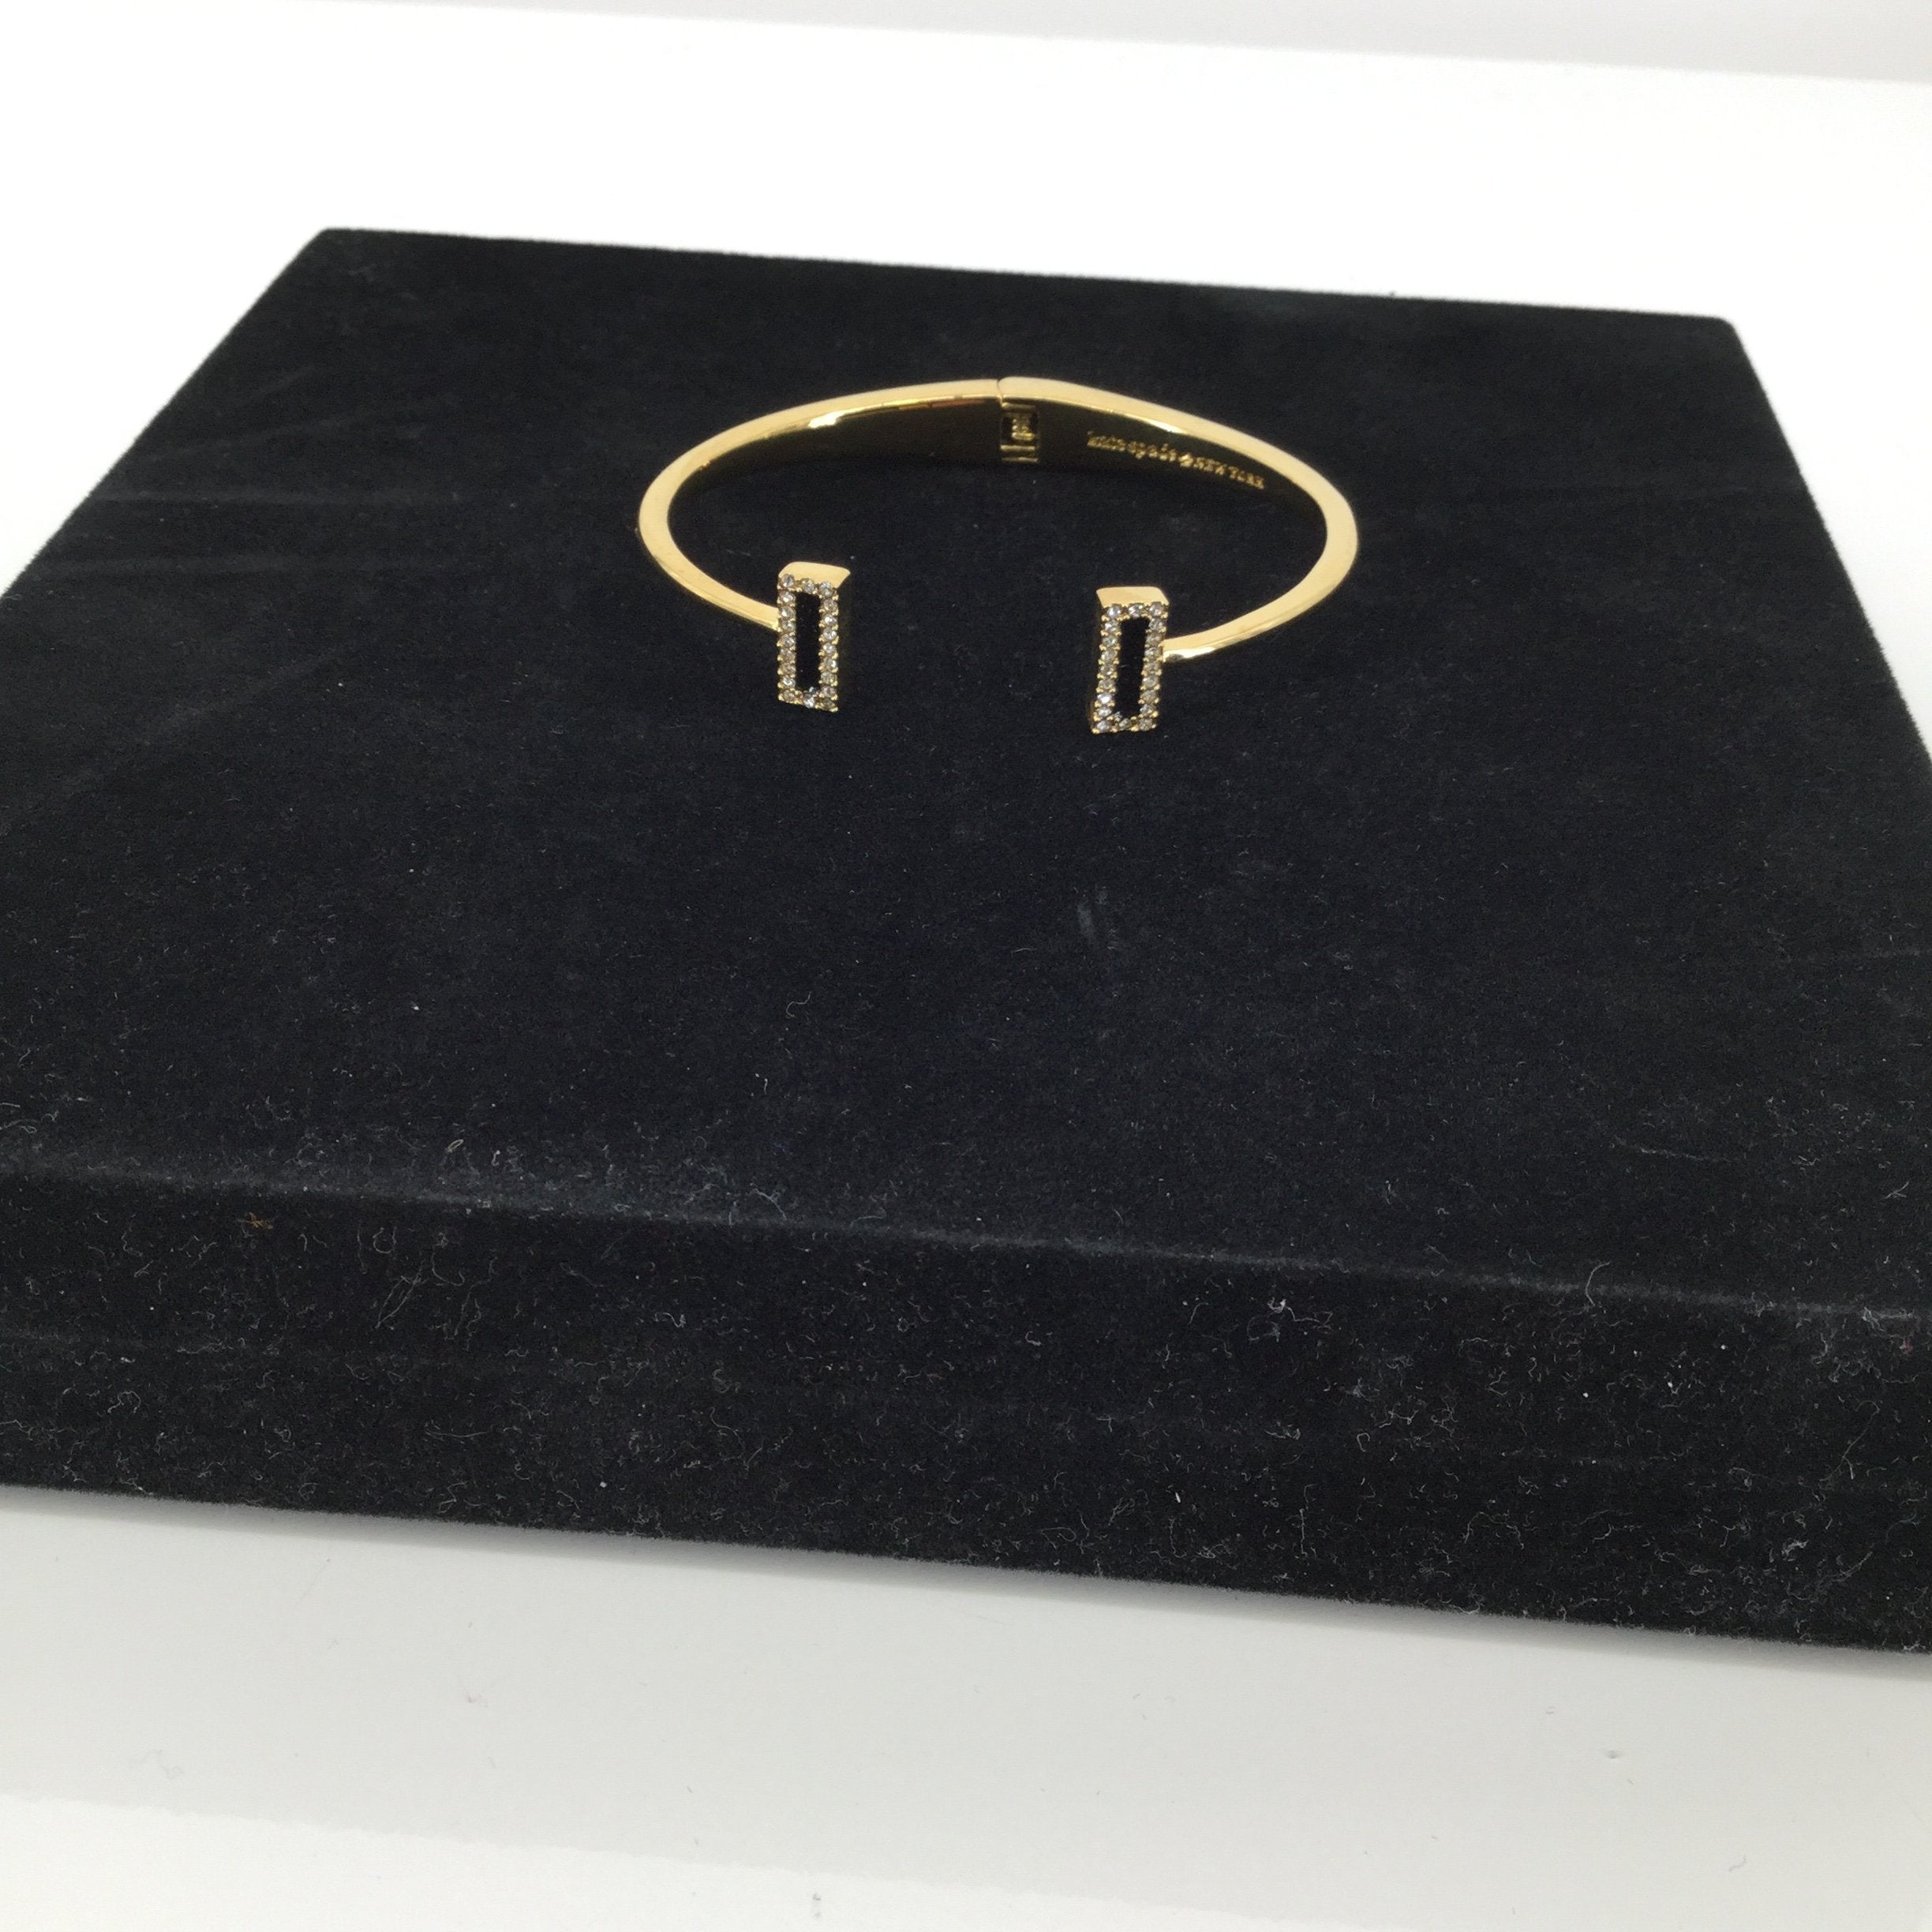 Kate Spade Bracelet - <P>CHIC KATE SPADE BANGLE BRACELET. SEMICIRCLE SHAPE.  BLACK RECTANGLE DETAIL WITH DIAMOND TRIM.  SOME MINOR SIGNS OF WEAR.  SEE PHOTOS.,  IN EXCELLENT PRE-OWNED CONDITION.</P>